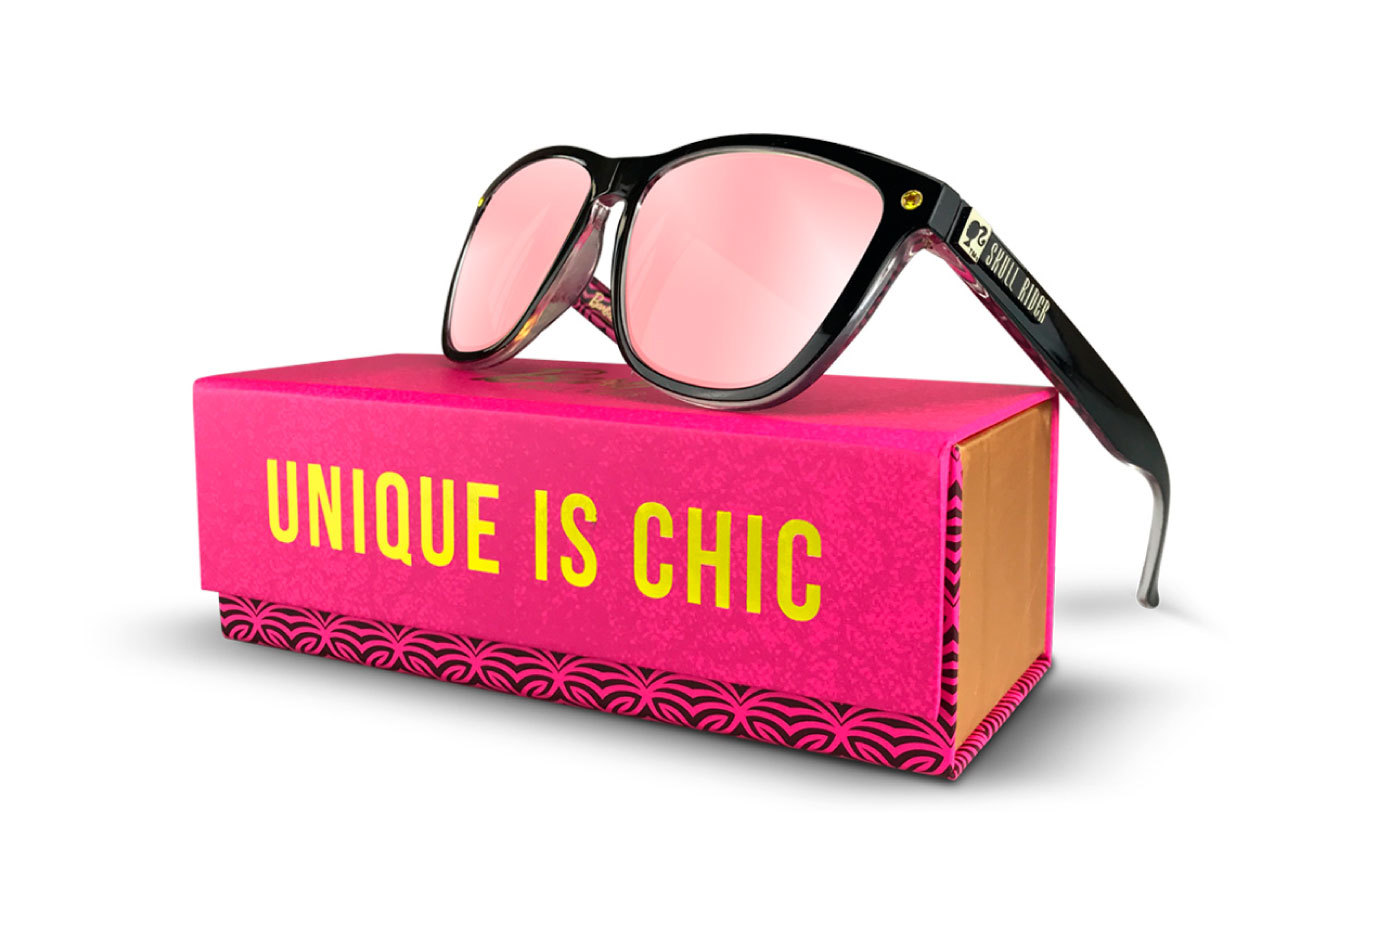 unique-is-chic-mattel